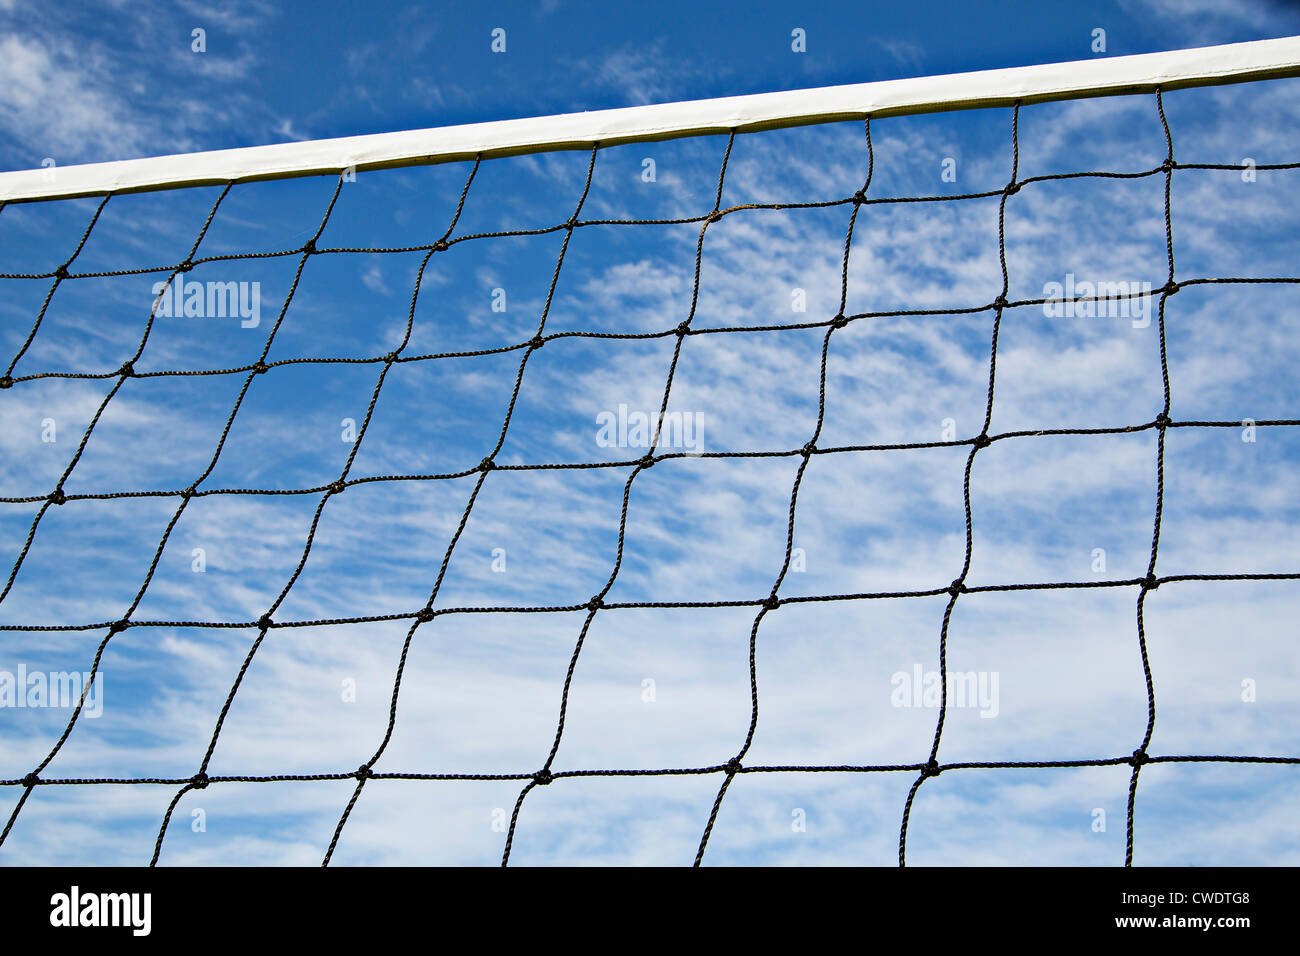 Volleyball net is strained tightly for coming game - Stock Image